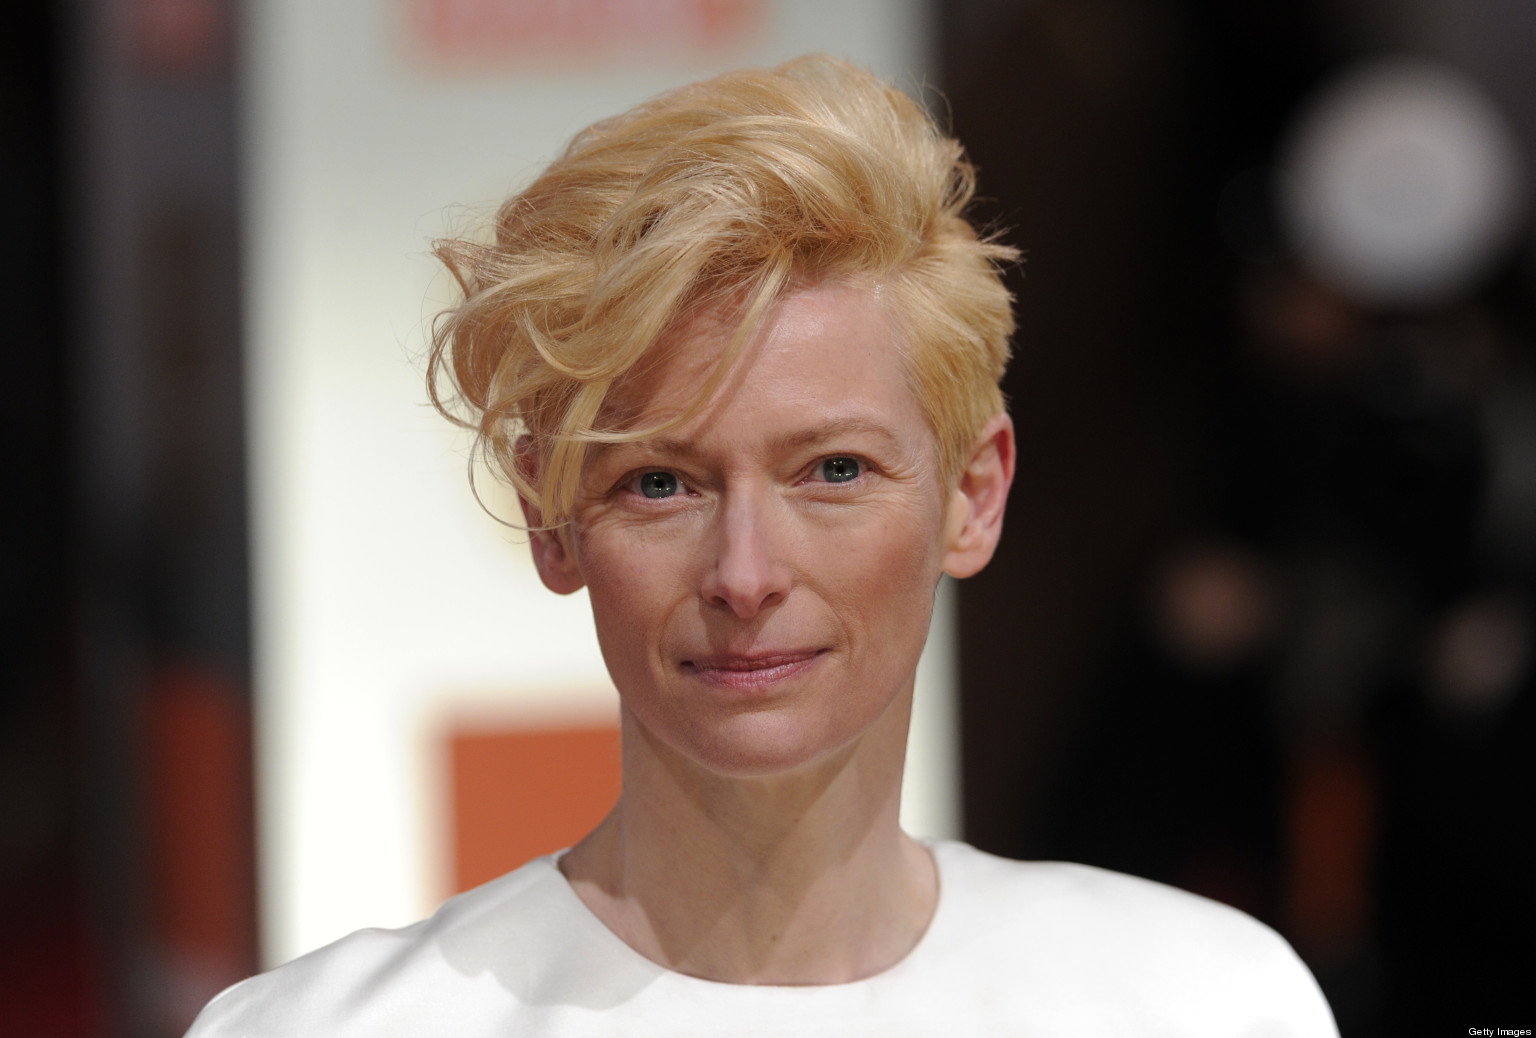 British actress Tilda Swinton poses on the red carpet arriving at the BAFTA British Academy Film Awards at the Royal Opera House in London on February 12, 2012. AFP PHOTO / CARL COURT (Photo credit should read CARL COURT/AFP/Getty Images)